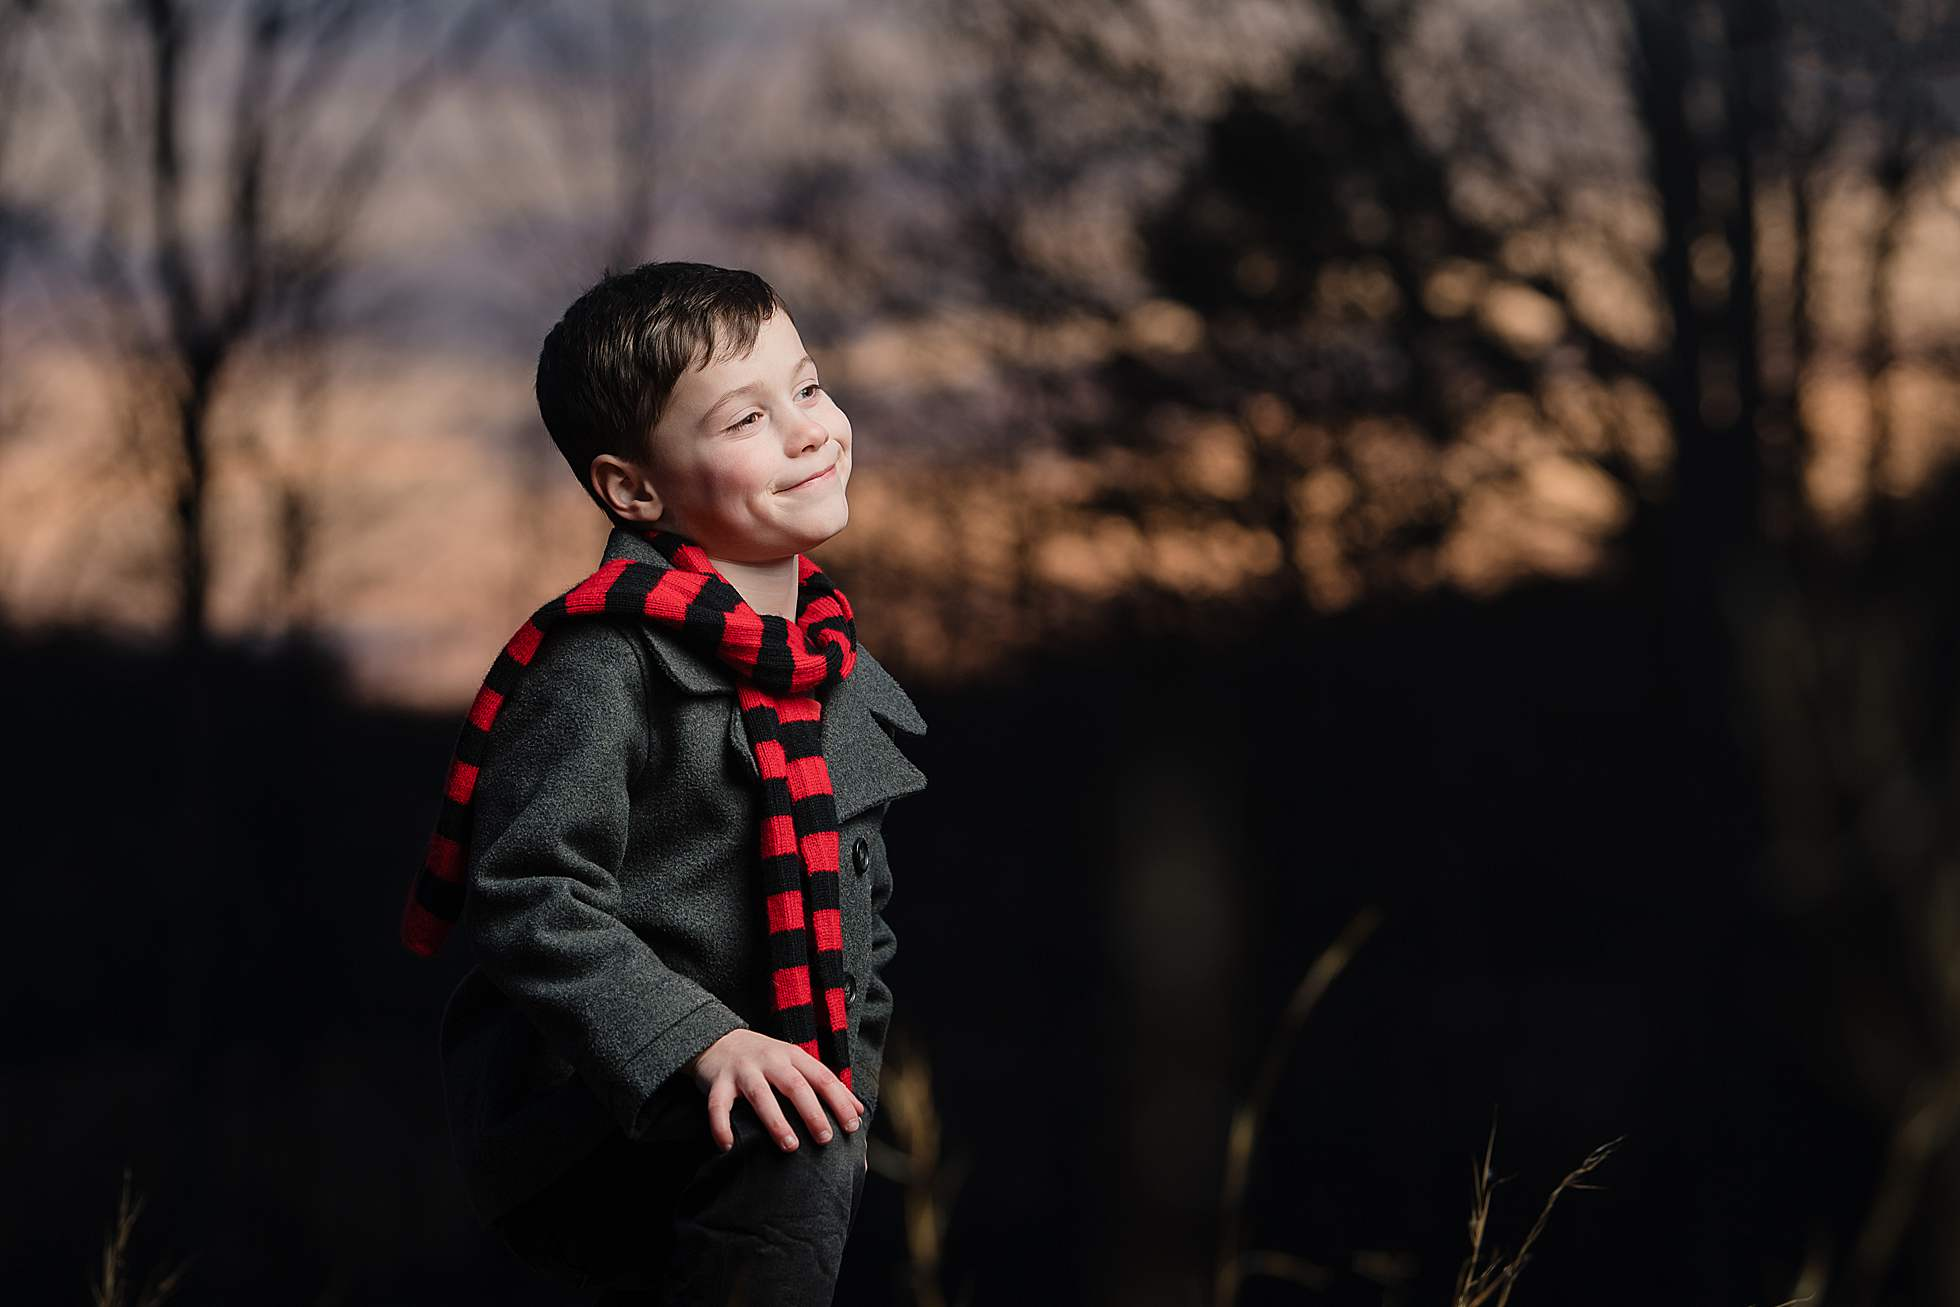 boy with red scarf at night